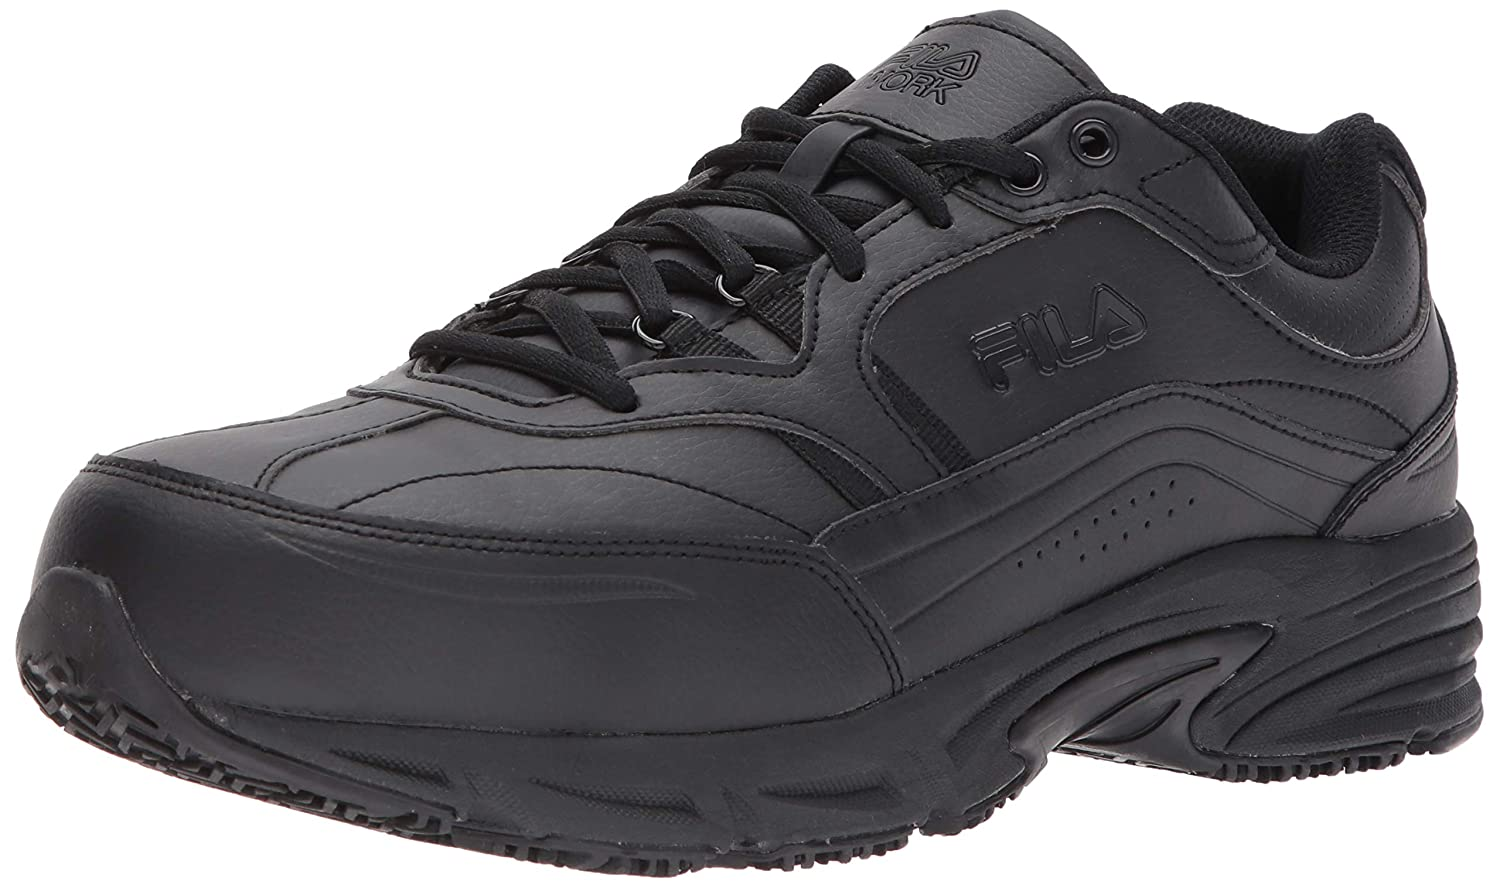 fc599a327f27 Amazon.com  Fila Men s Memory Workshift Slip Resistant Steel Toe Work Shoes  Hiking  Shoes